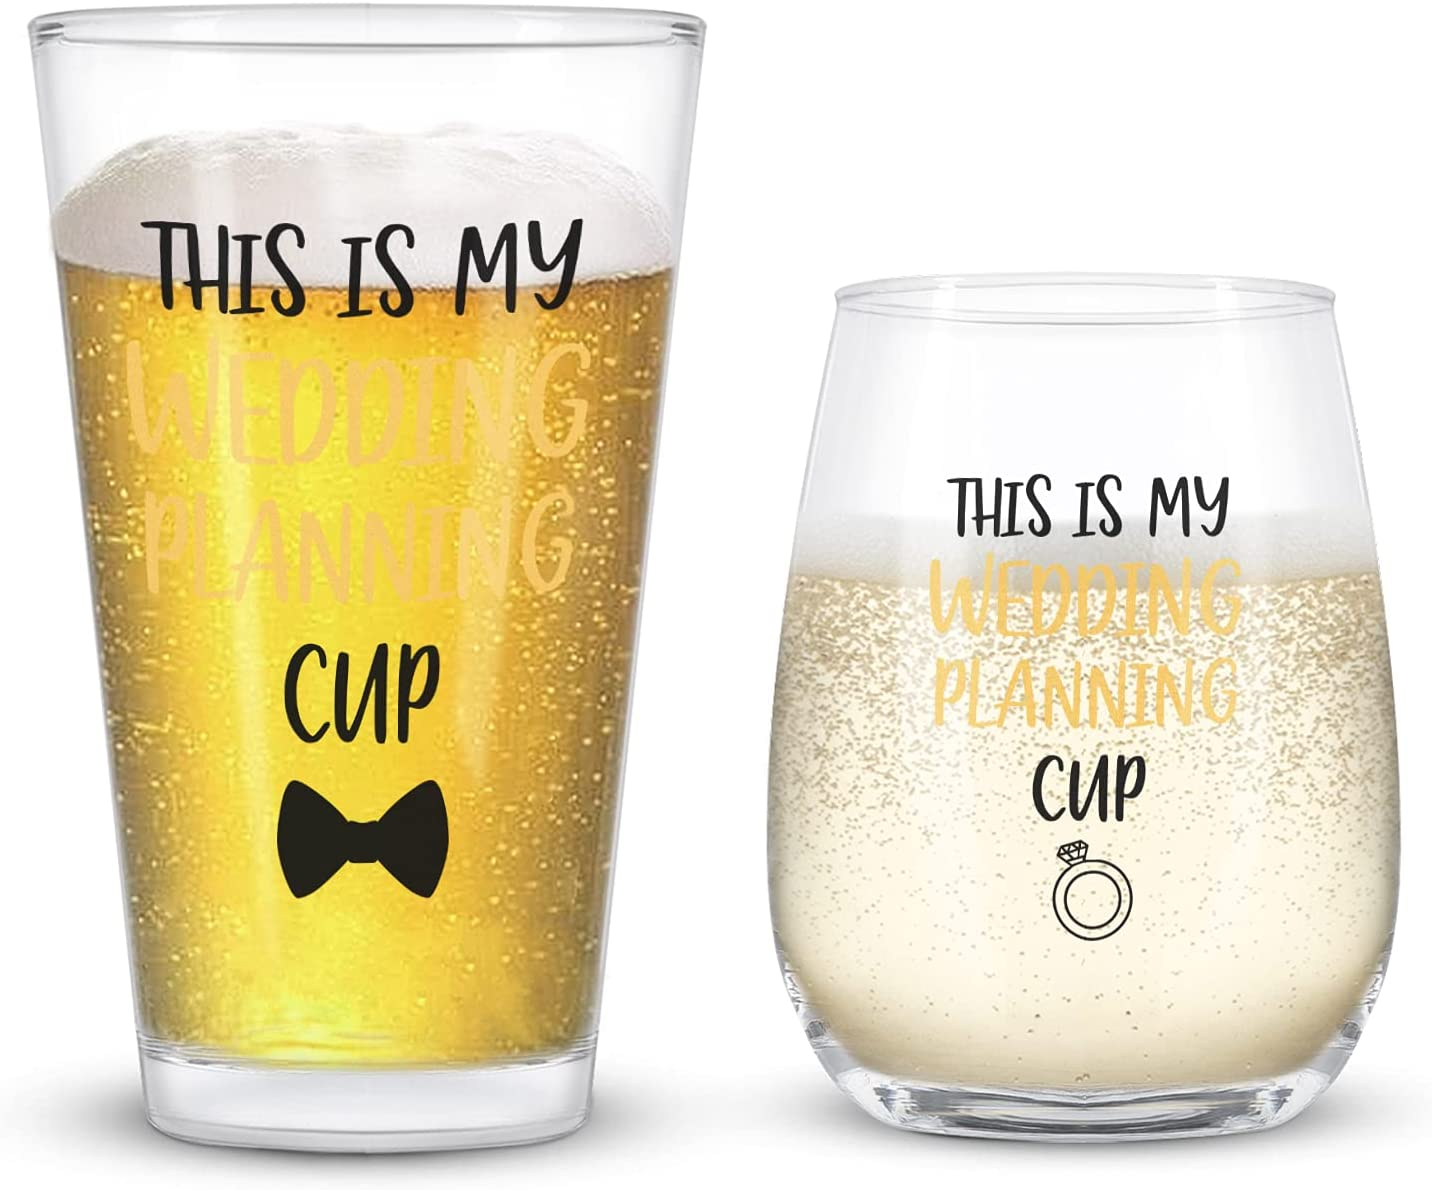 Super popular specialty Fresno Mall store This Is My Wedding Planning Cup Gla Glass Beer and Wine Stemless